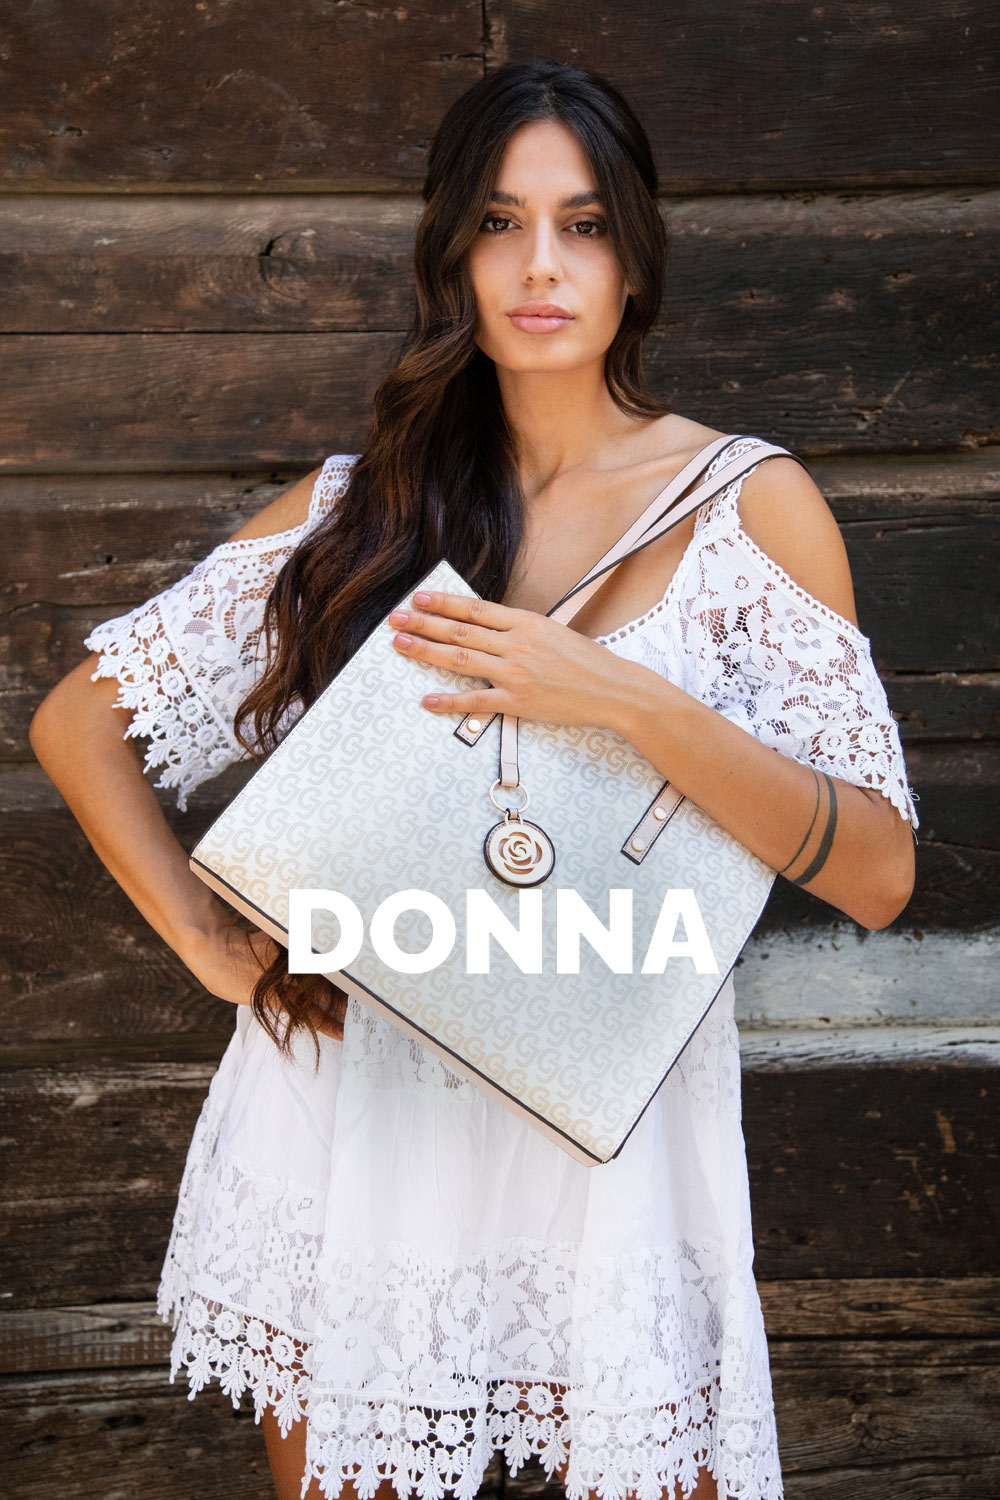 donna-home-2021